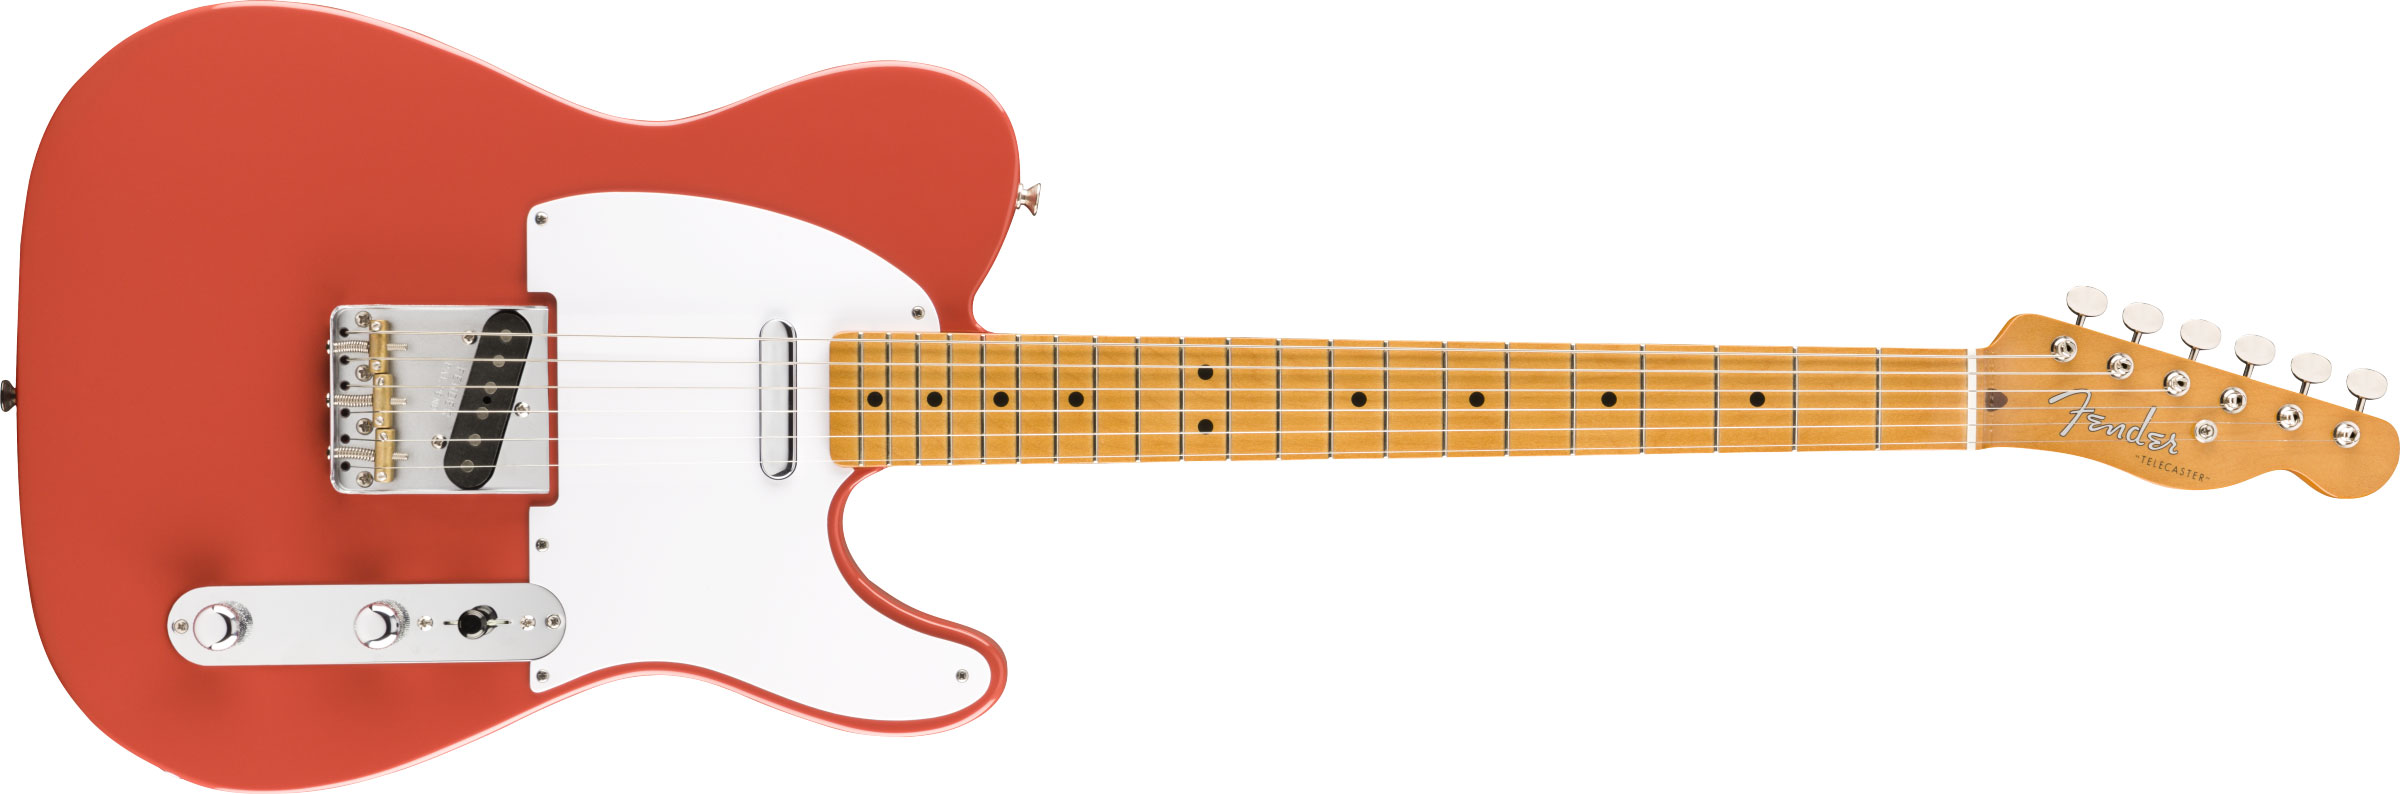 GUITARRA FENDER VINTERA 50S TELECASTER MAPLE 014-9852-340 FIESTA RED